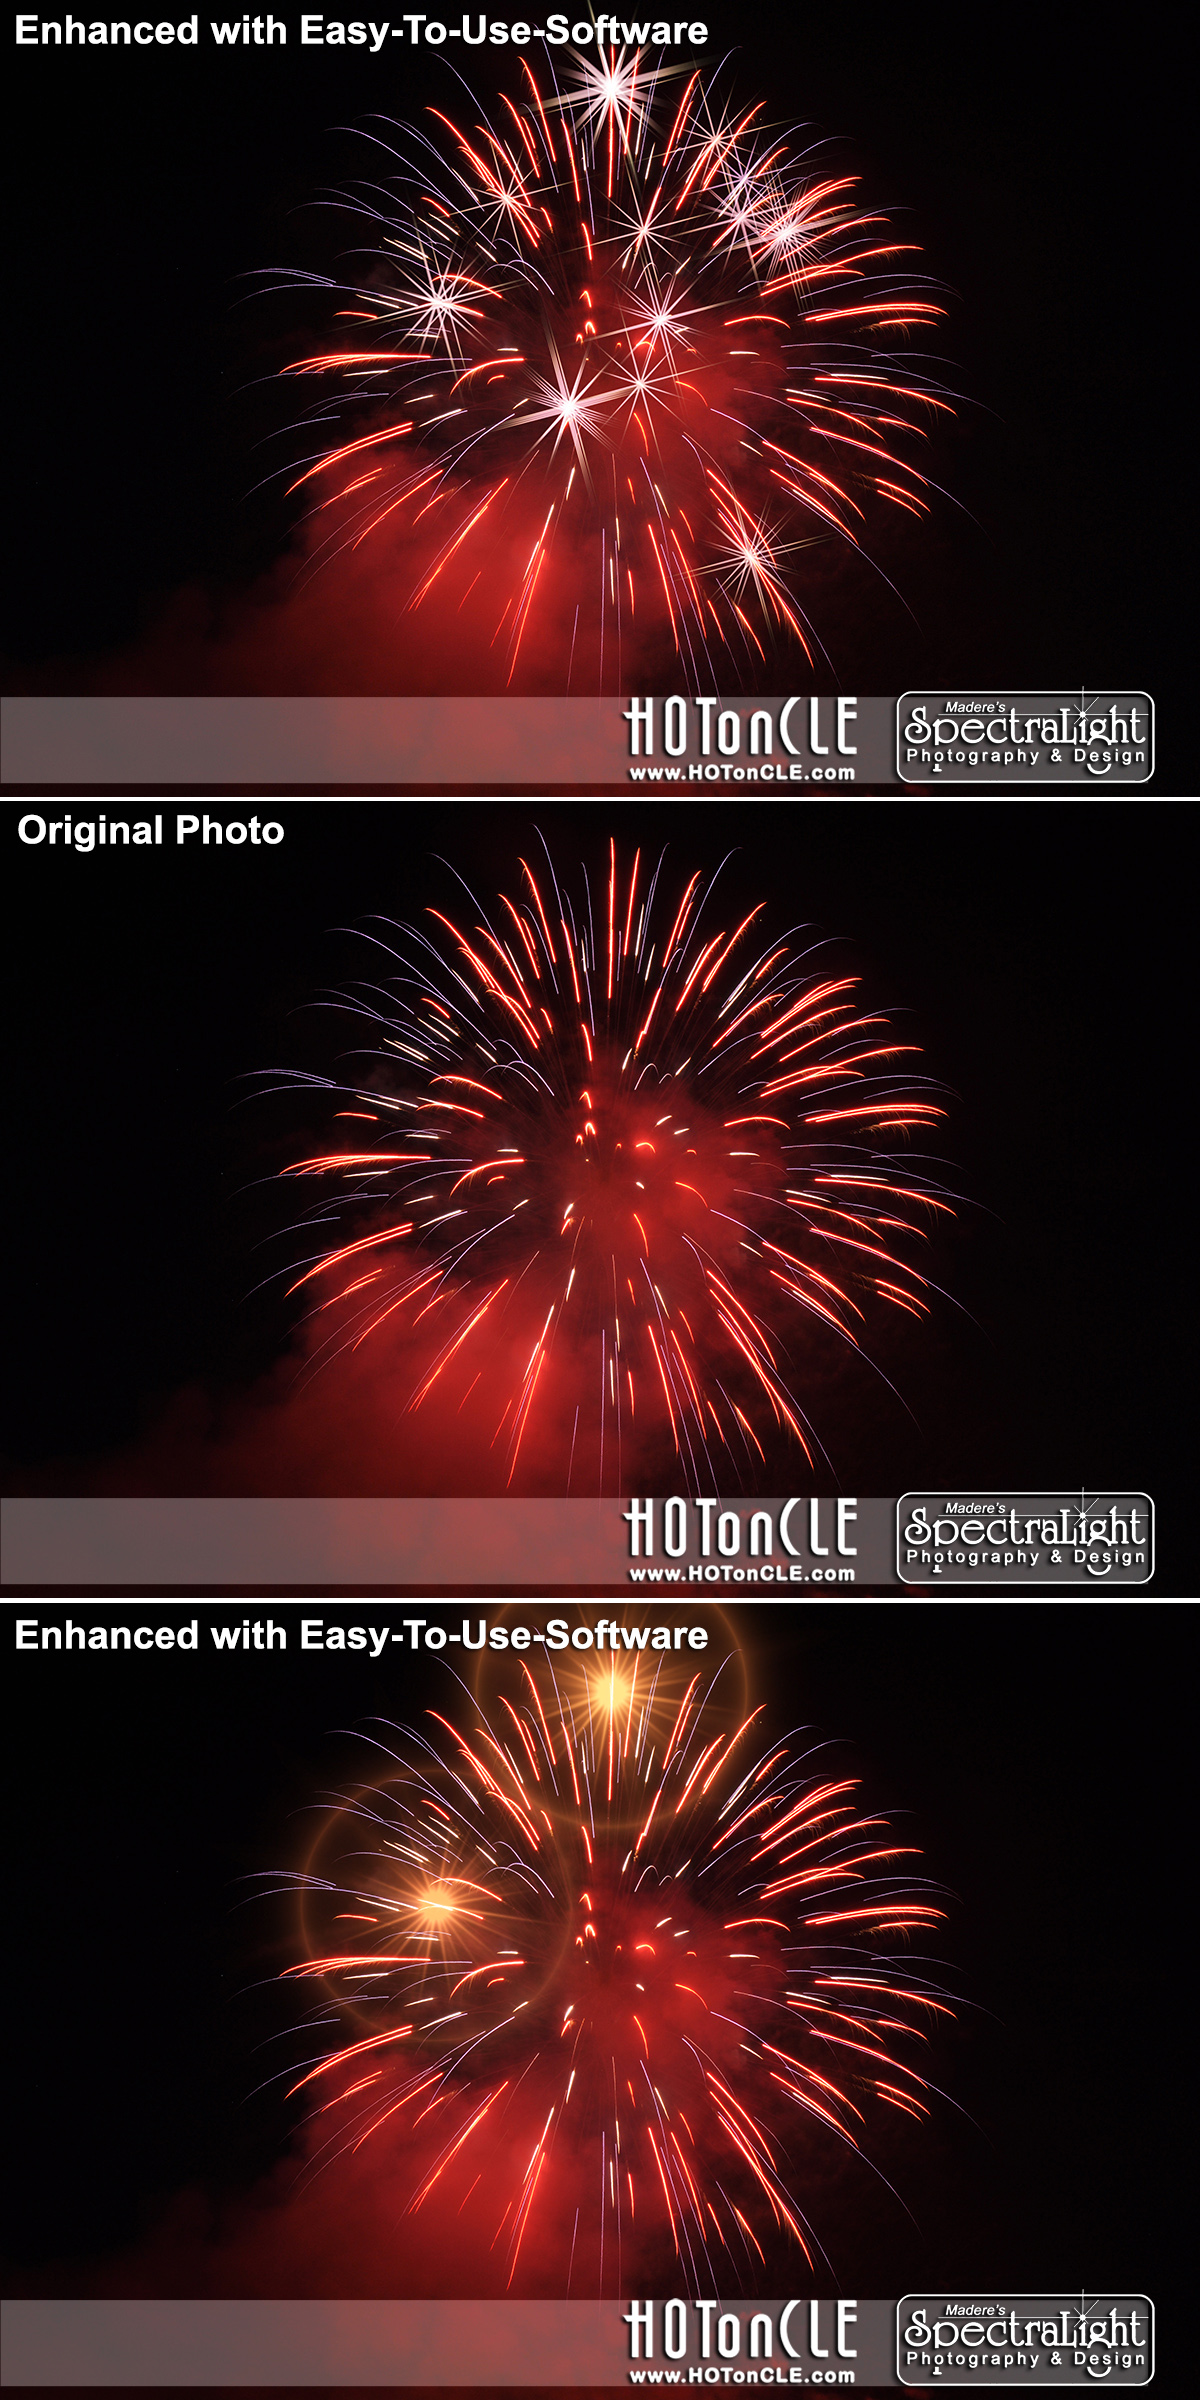 Fourth of July fireworks get a new look with simple-to-use software that almost anyone can master in minutes! This photo was taken by North Ridgeville photographer, Mark Madere - a portrait and commercial photographer covering Cleveland and Northeast Ohio.